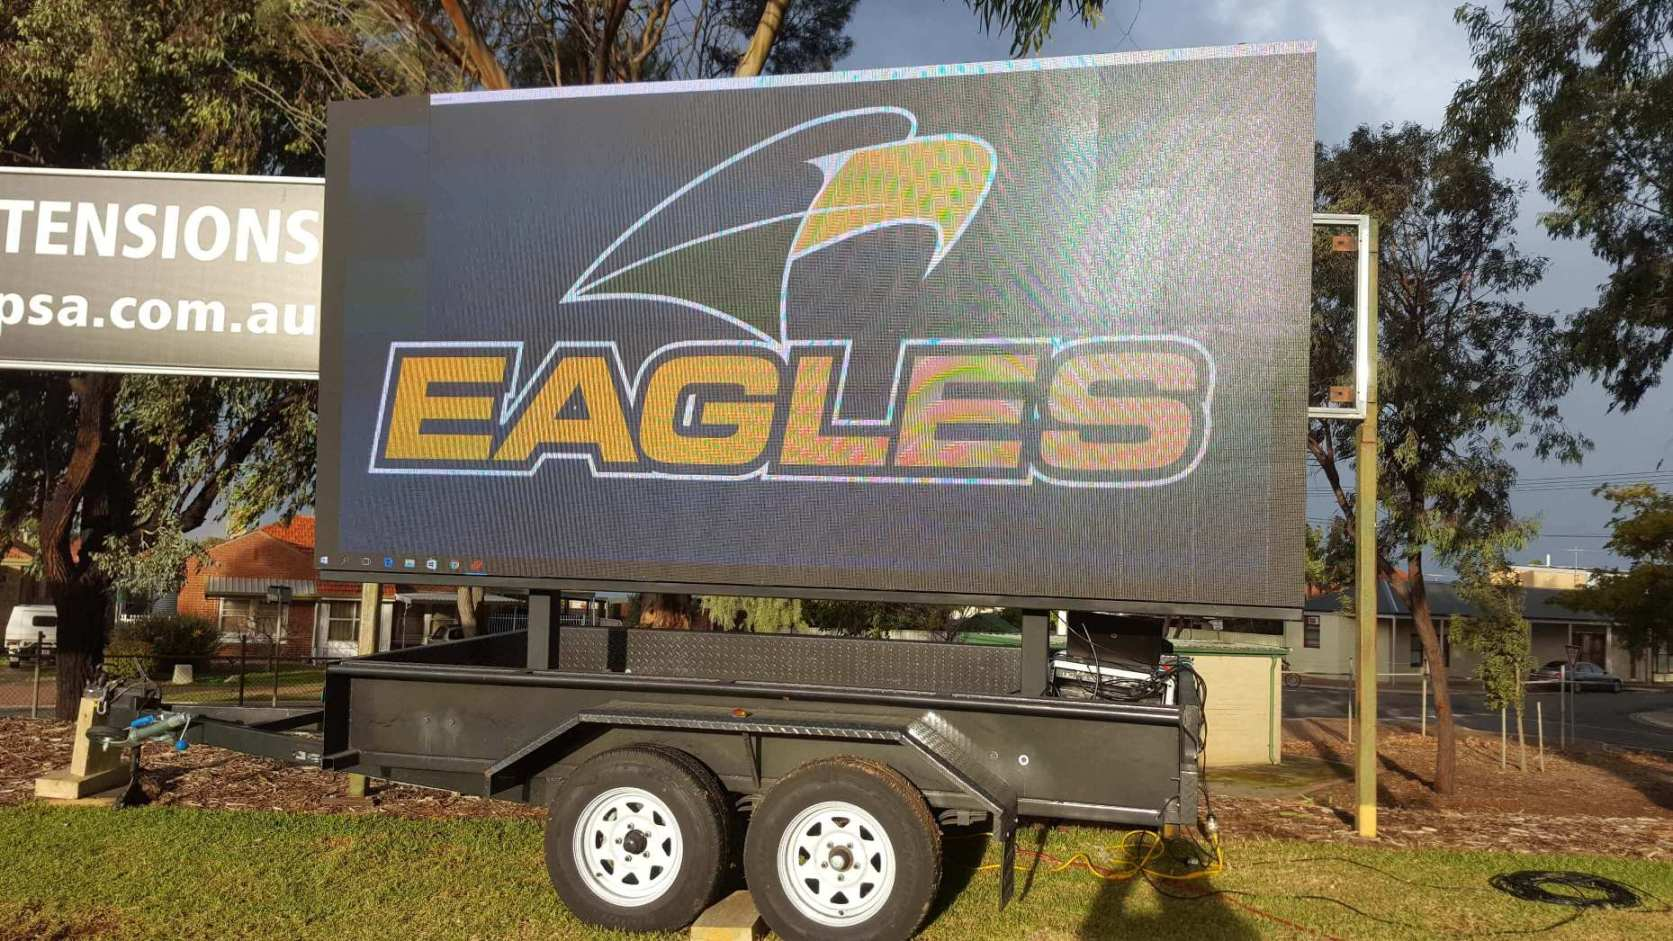 Big Vision Screens supplied the 16.5 sqm LED screen which was used as a coreboard for West Torrens Eagles match of South Australian National Football League